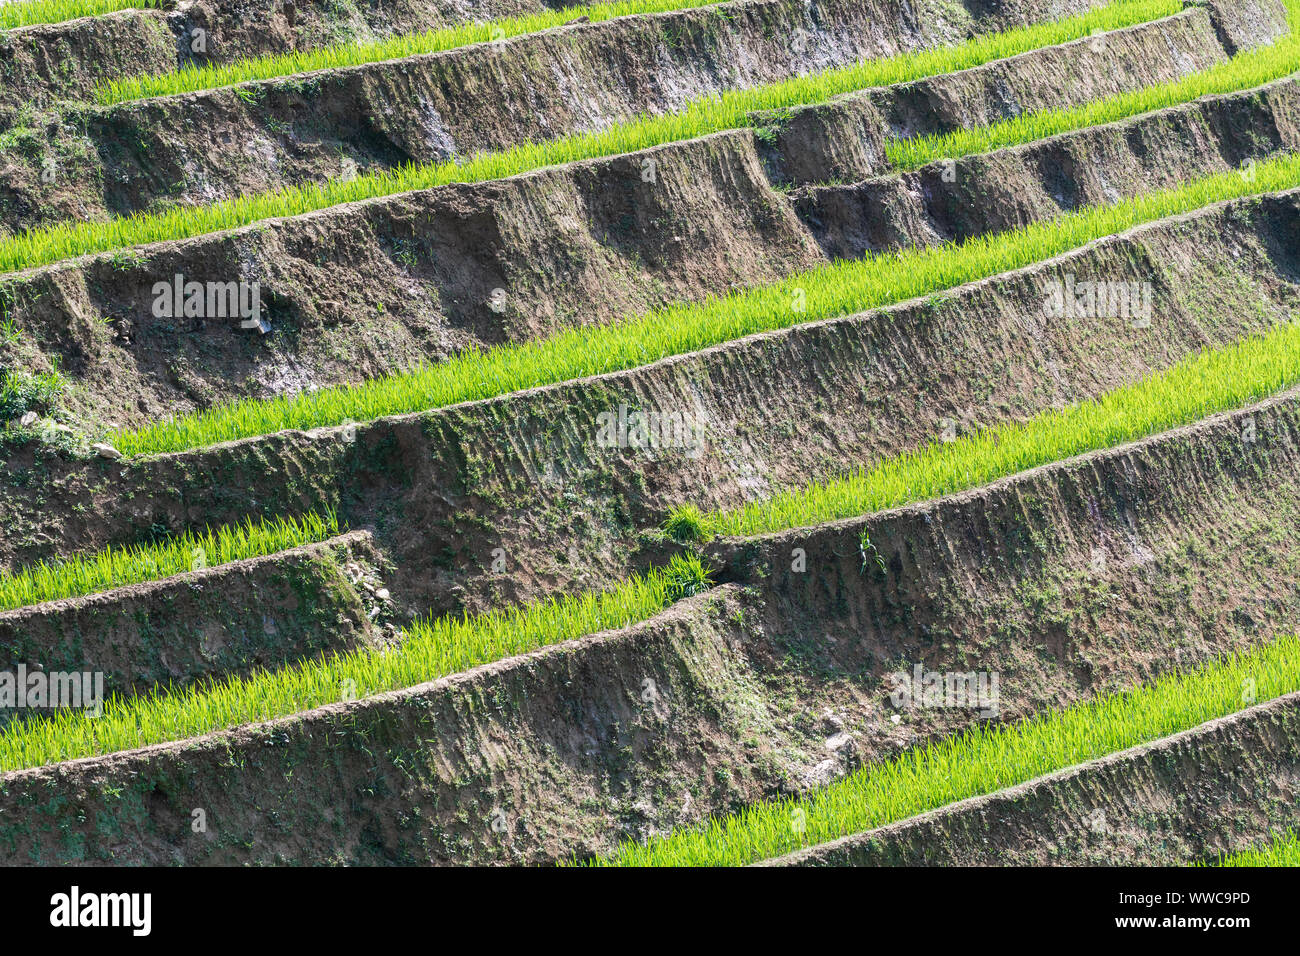 Background pattern of Sapa rice terraces in Lao Cai province, Vietnam. Stock Photo